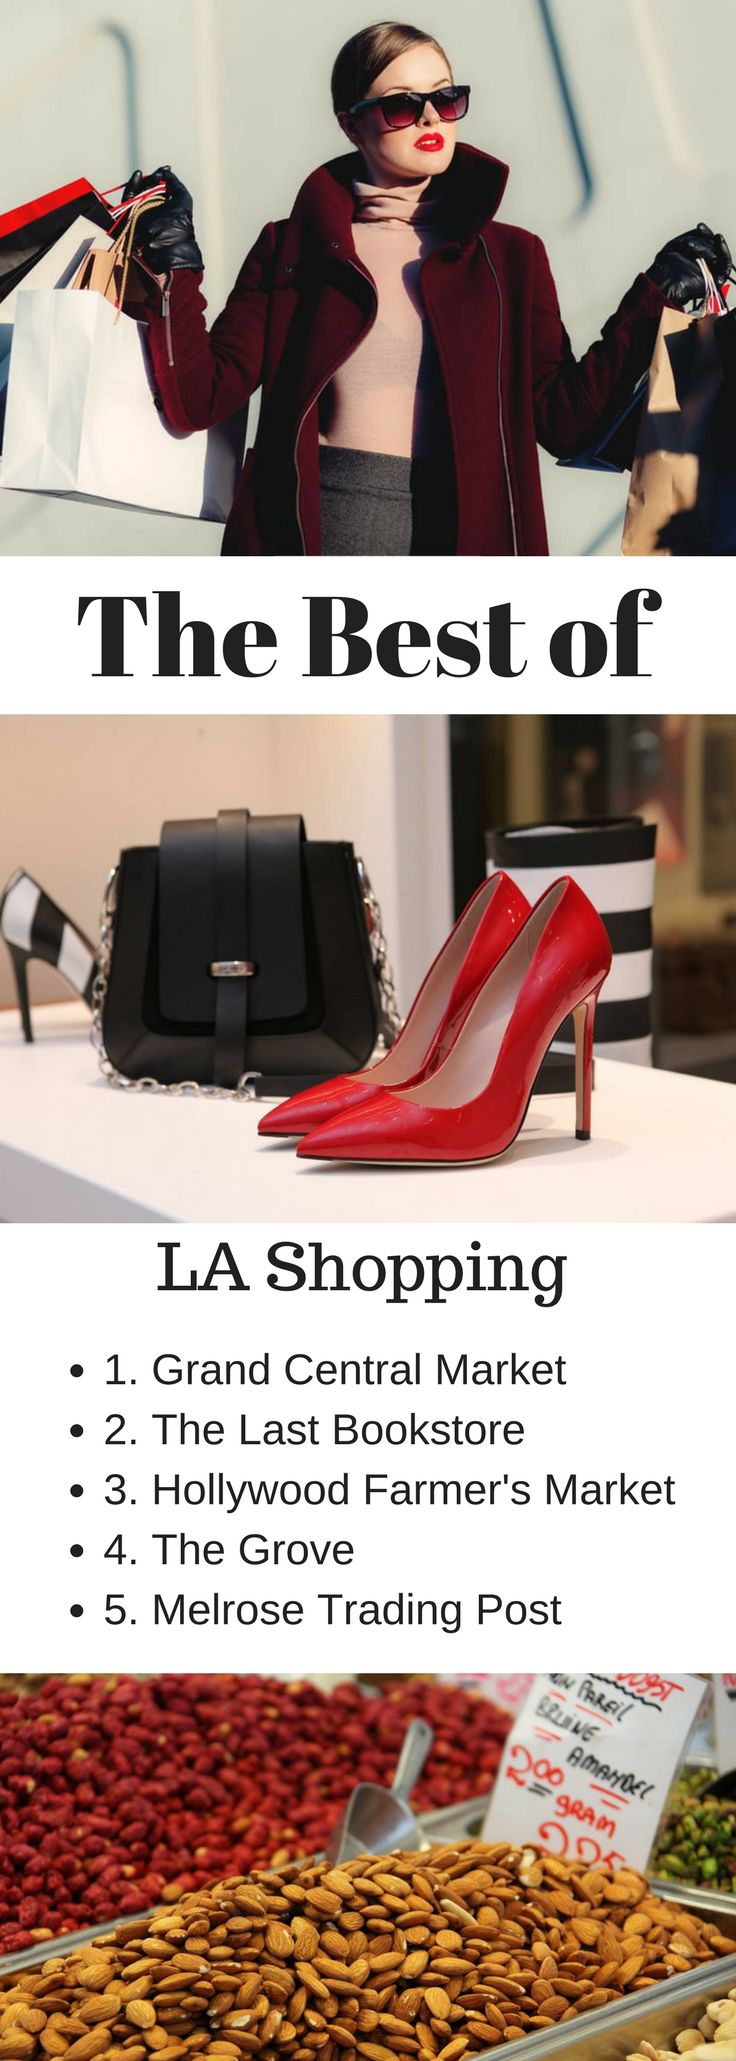 The best Los Angeles shopping all in one place! From LA boutique storefronts to outlet malls, here are the best Los Angeles shopping spots! Shoppings Los Angeles | Shops in LA | Santa Monica Shopping